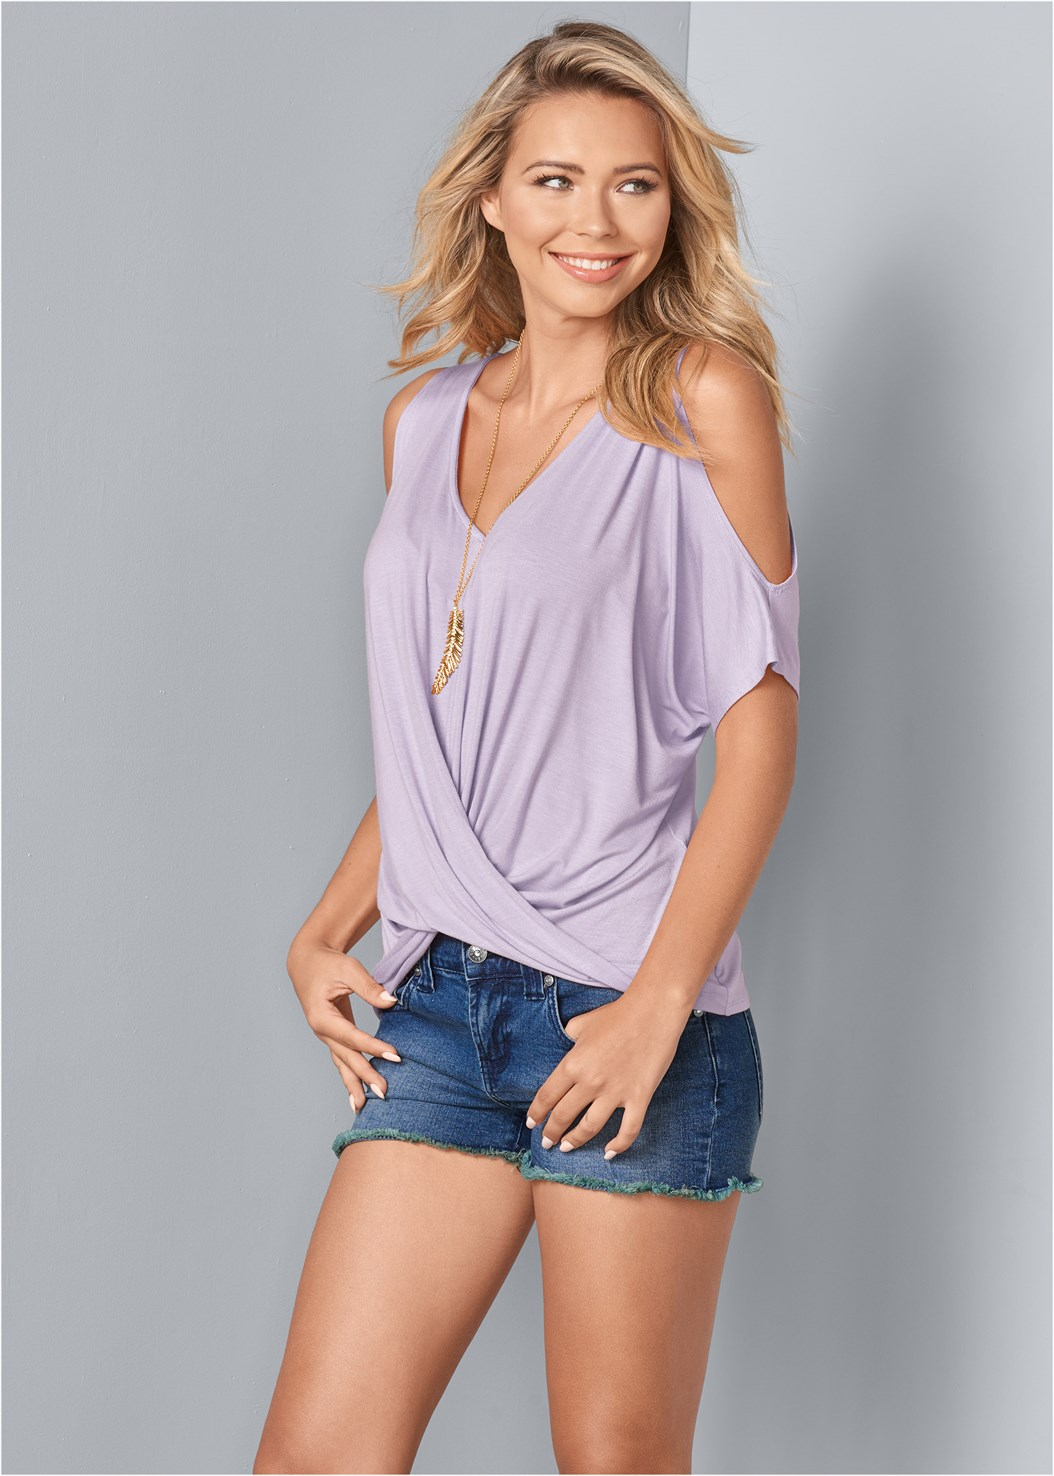 Cold Shoulder Twist Top,Frayed Cut Off Jean Shorts